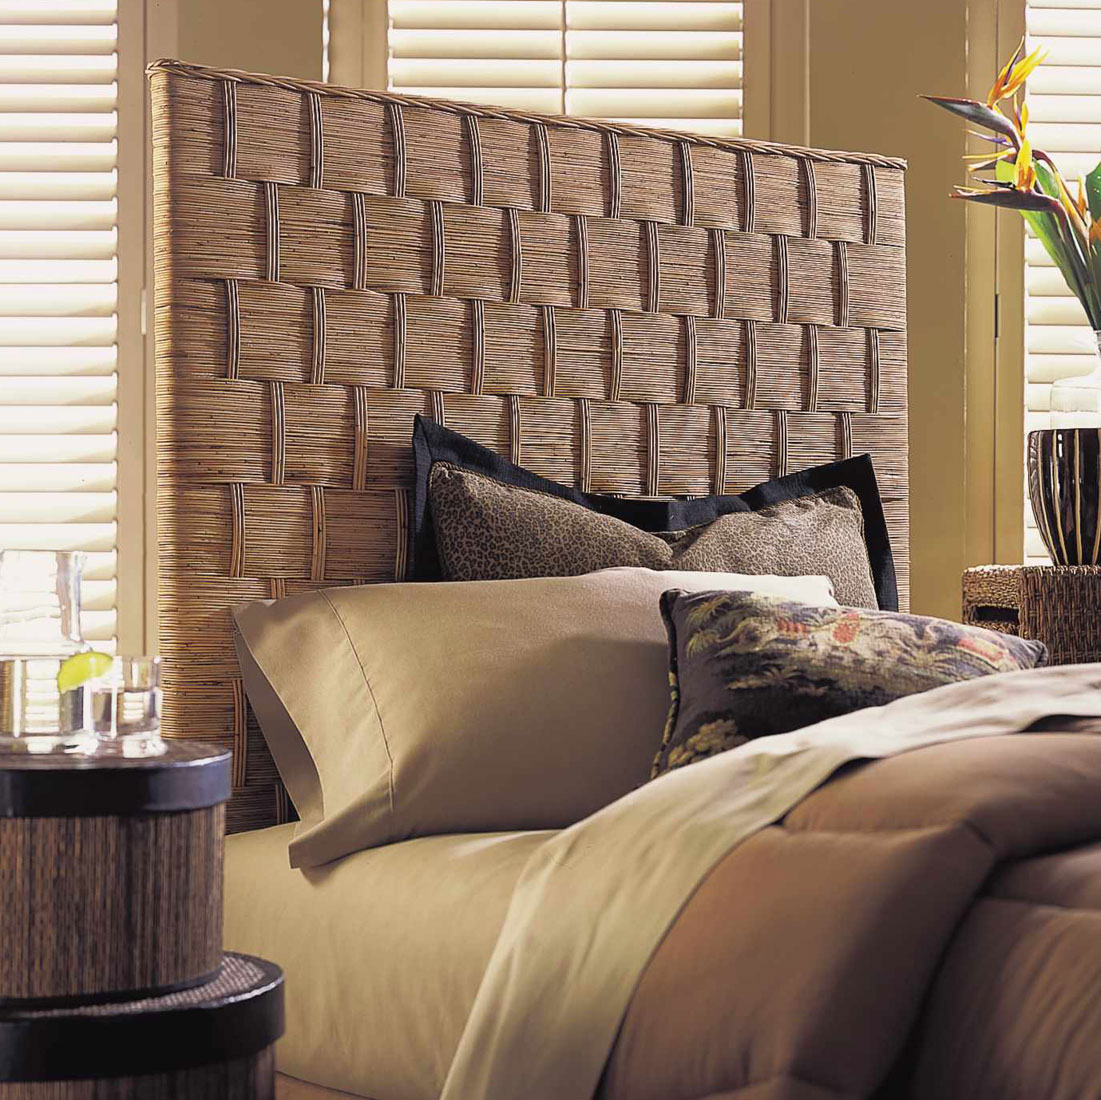 half off 5d42f 22303 Top 5 Benefits of Buying a Headboard - OCFurniture